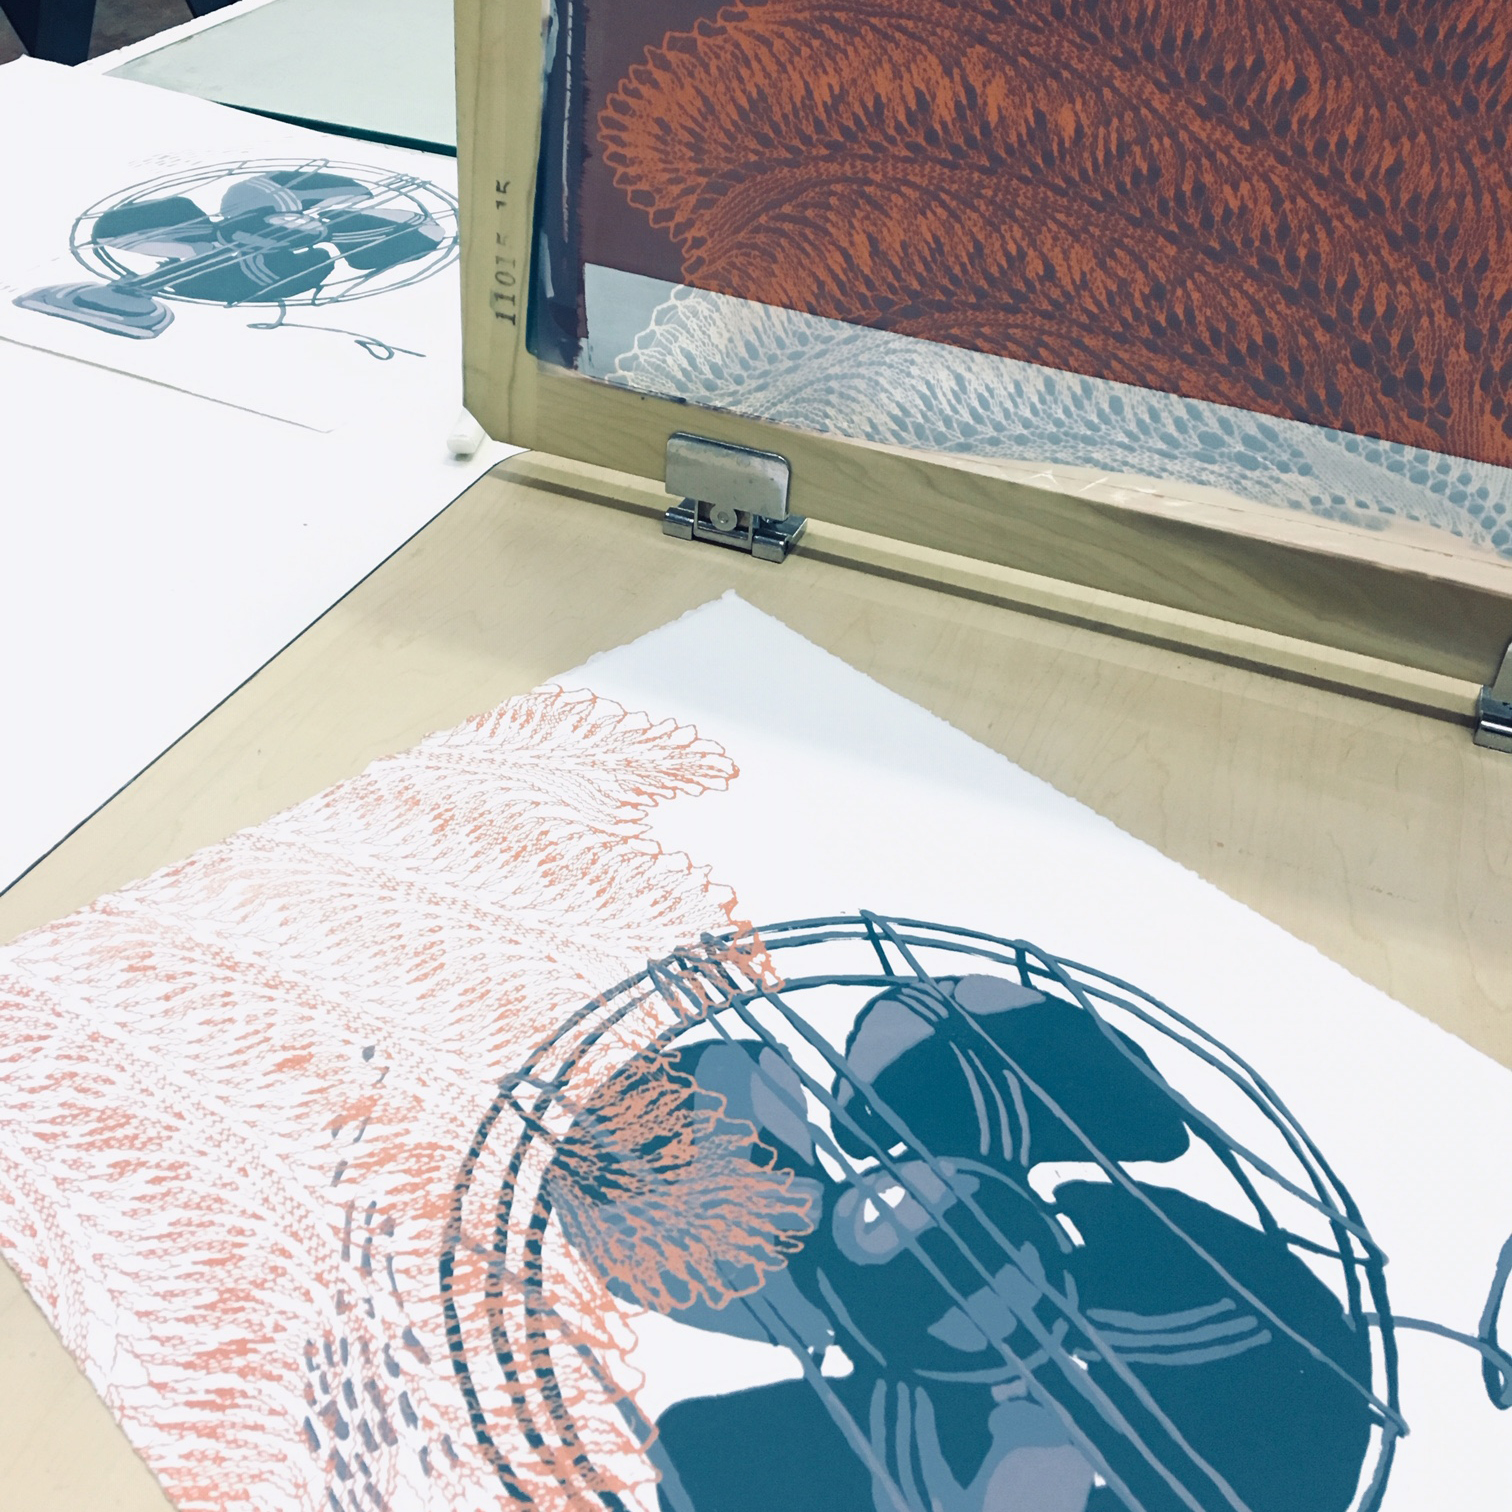 screen printed fan with emulsion and reduction